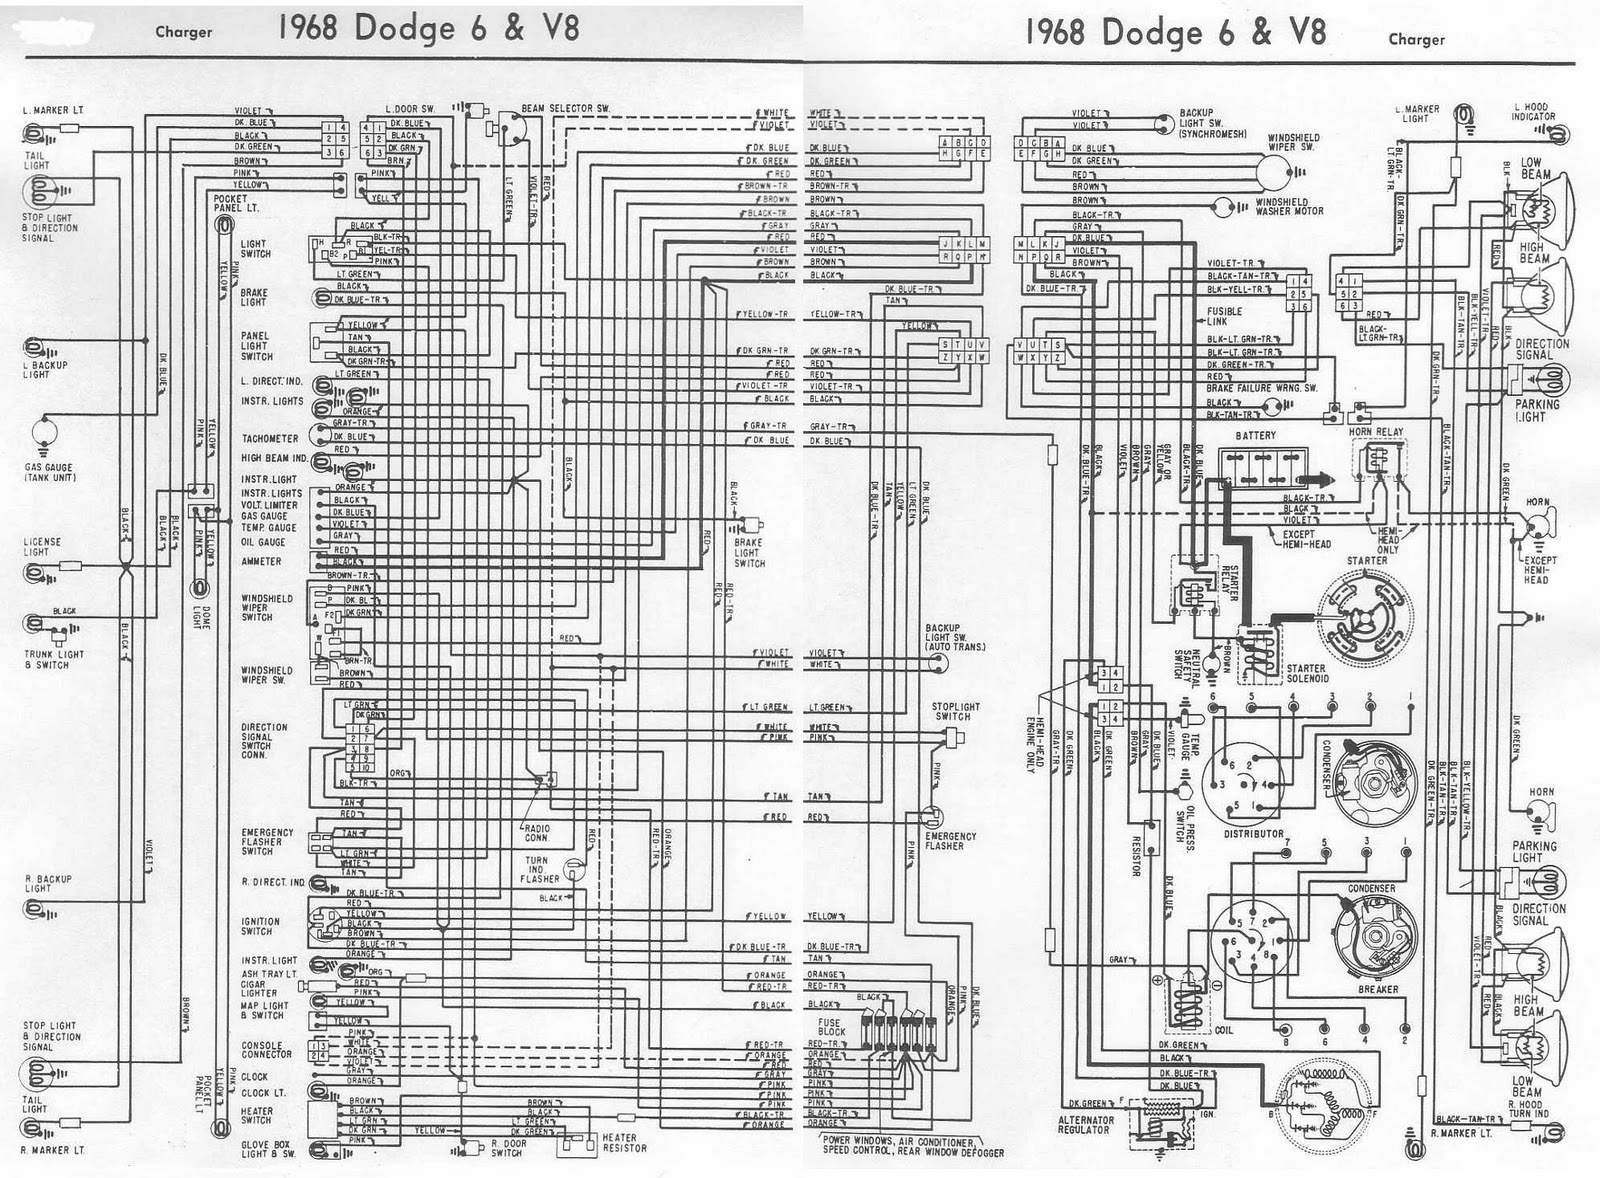 dodge charger 1968 6 and v8 complete electrical wiring diagram dodge charger 1968 6 and v8 complete electrical wiring diagram